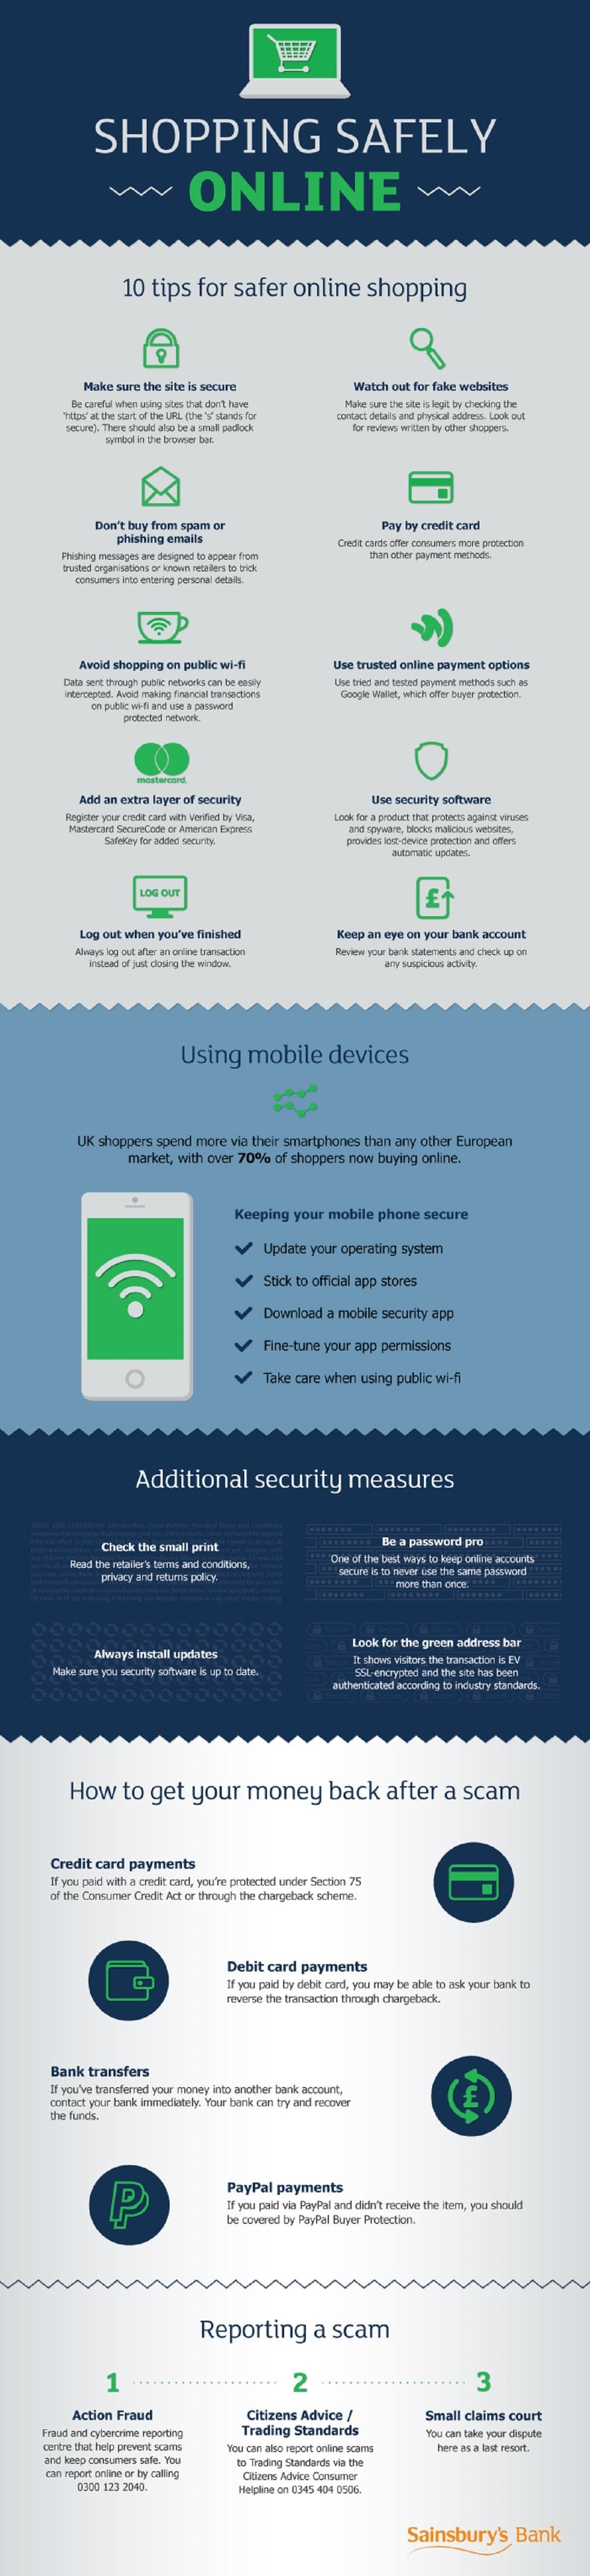 Guide to shopping safely online #infographic